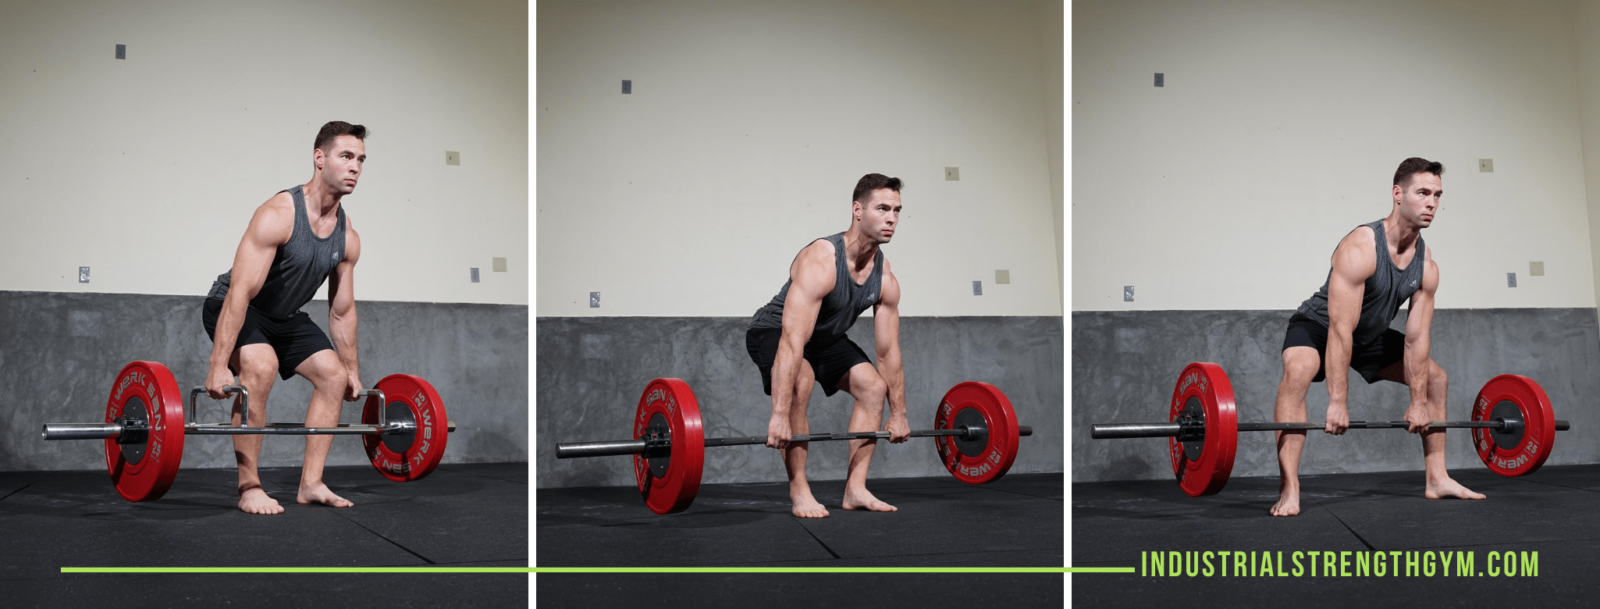 Man lifting weight in three separate pictures